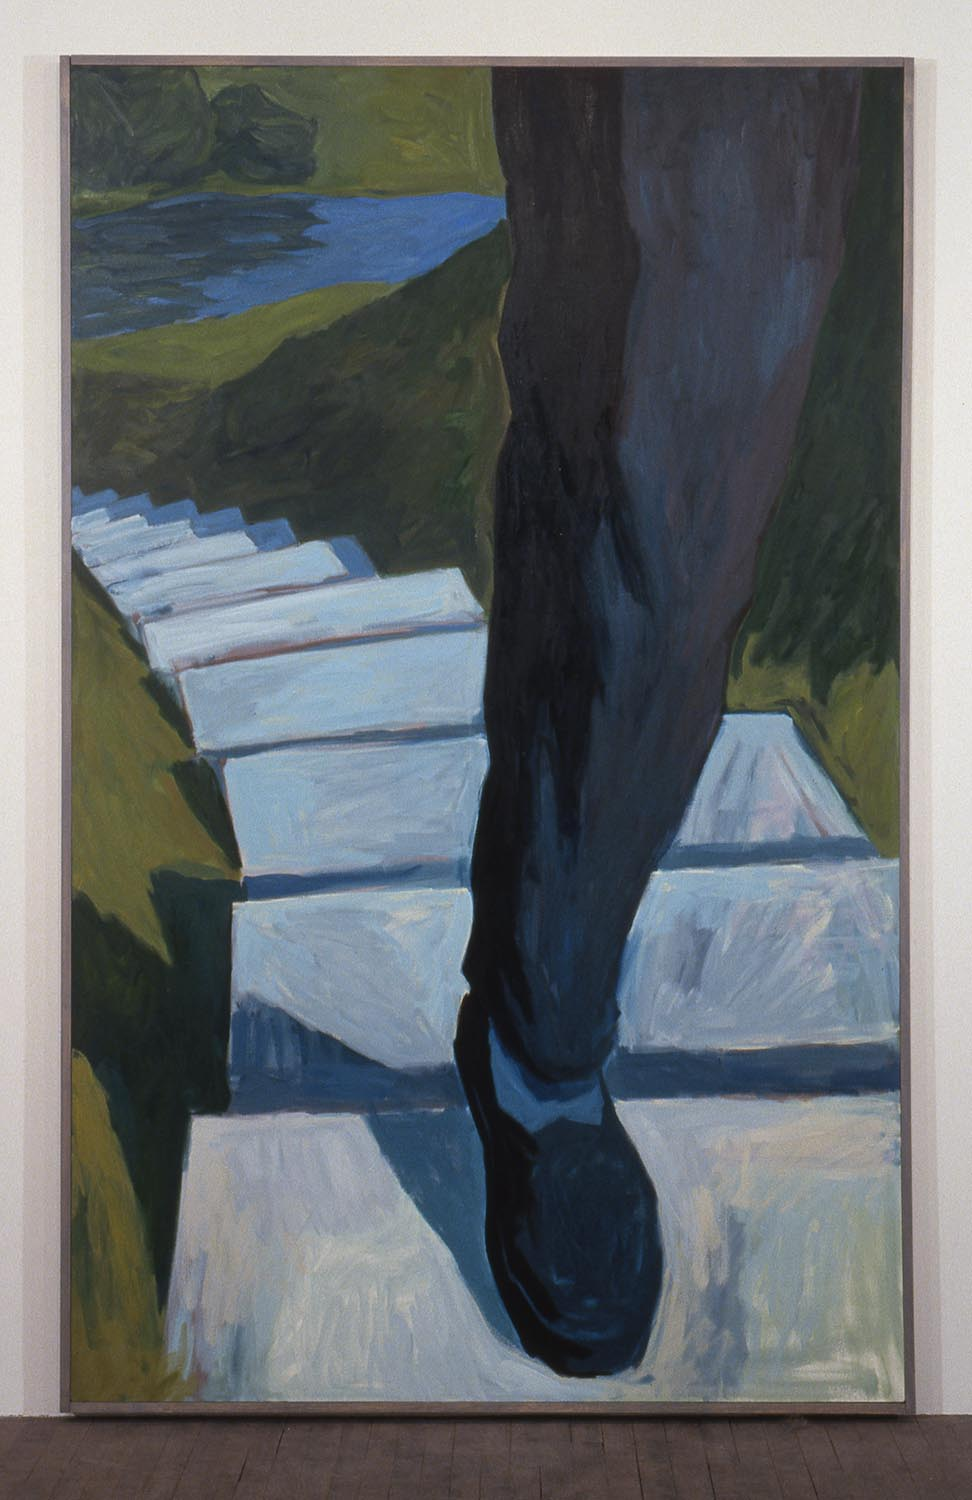 Poursuite 1 (Chase 1), 1988